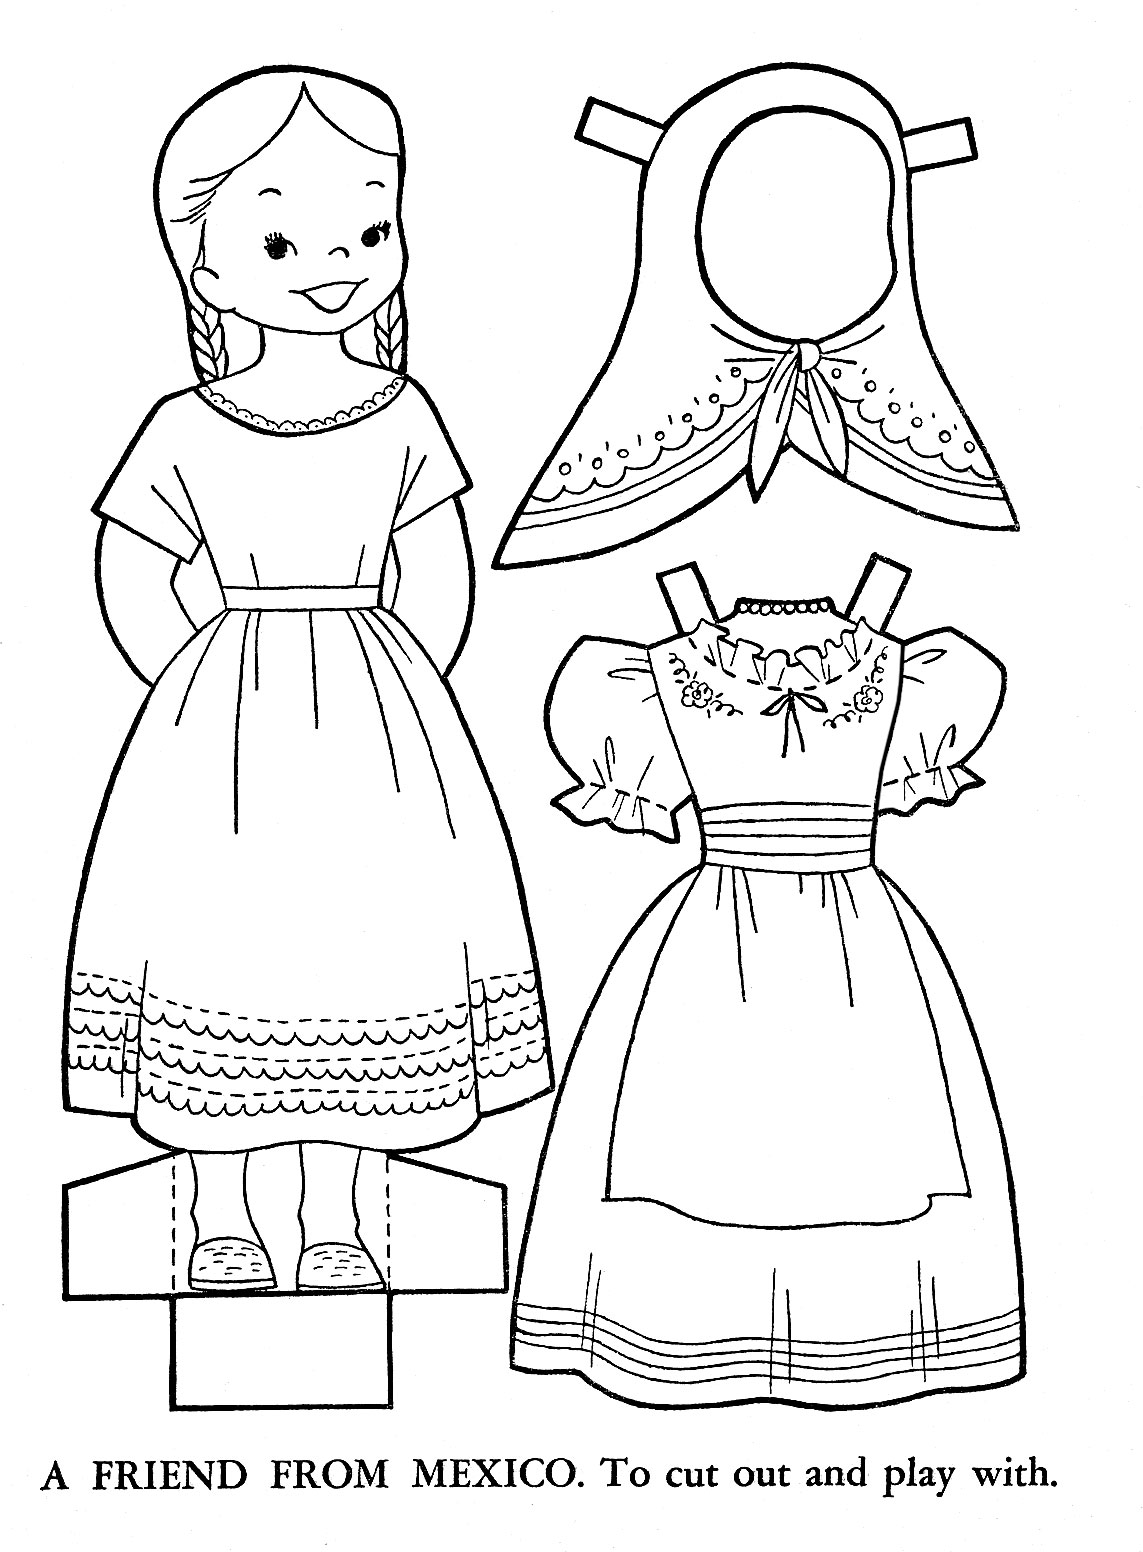 Career Day Clothing Coloring Pages